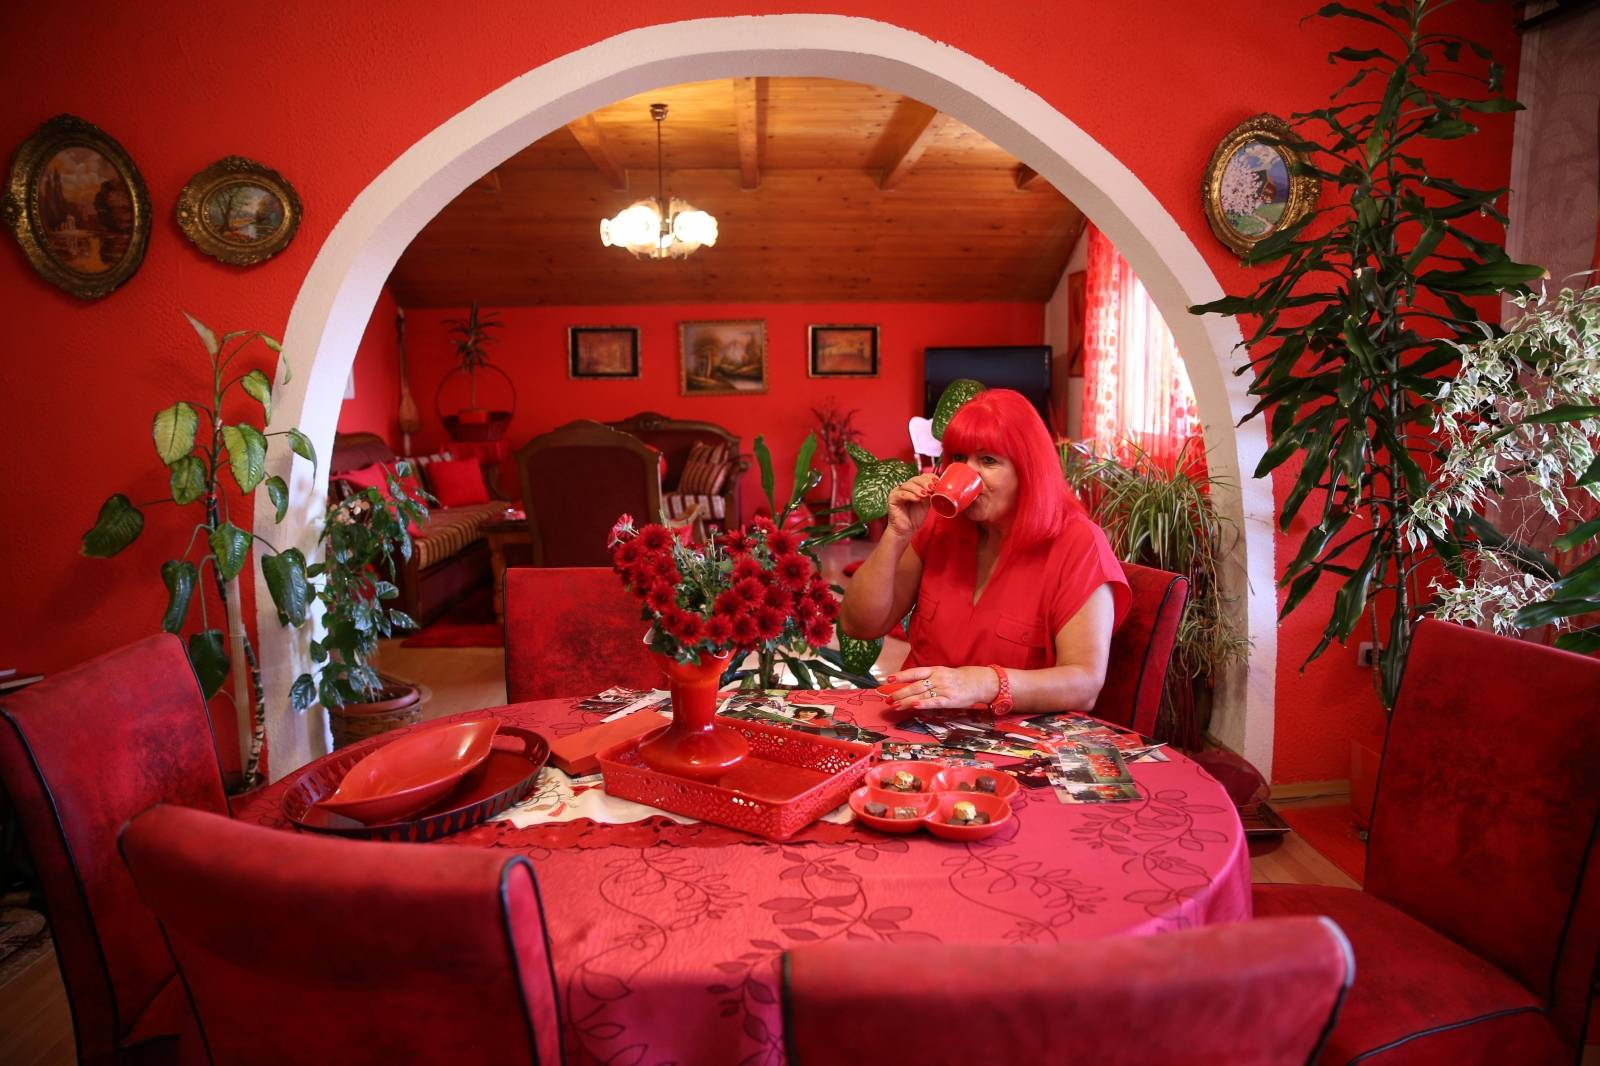 Zorica Rebernik, obsessed with the red color, drinks coffee in her house in the village of Breze near Tuzla